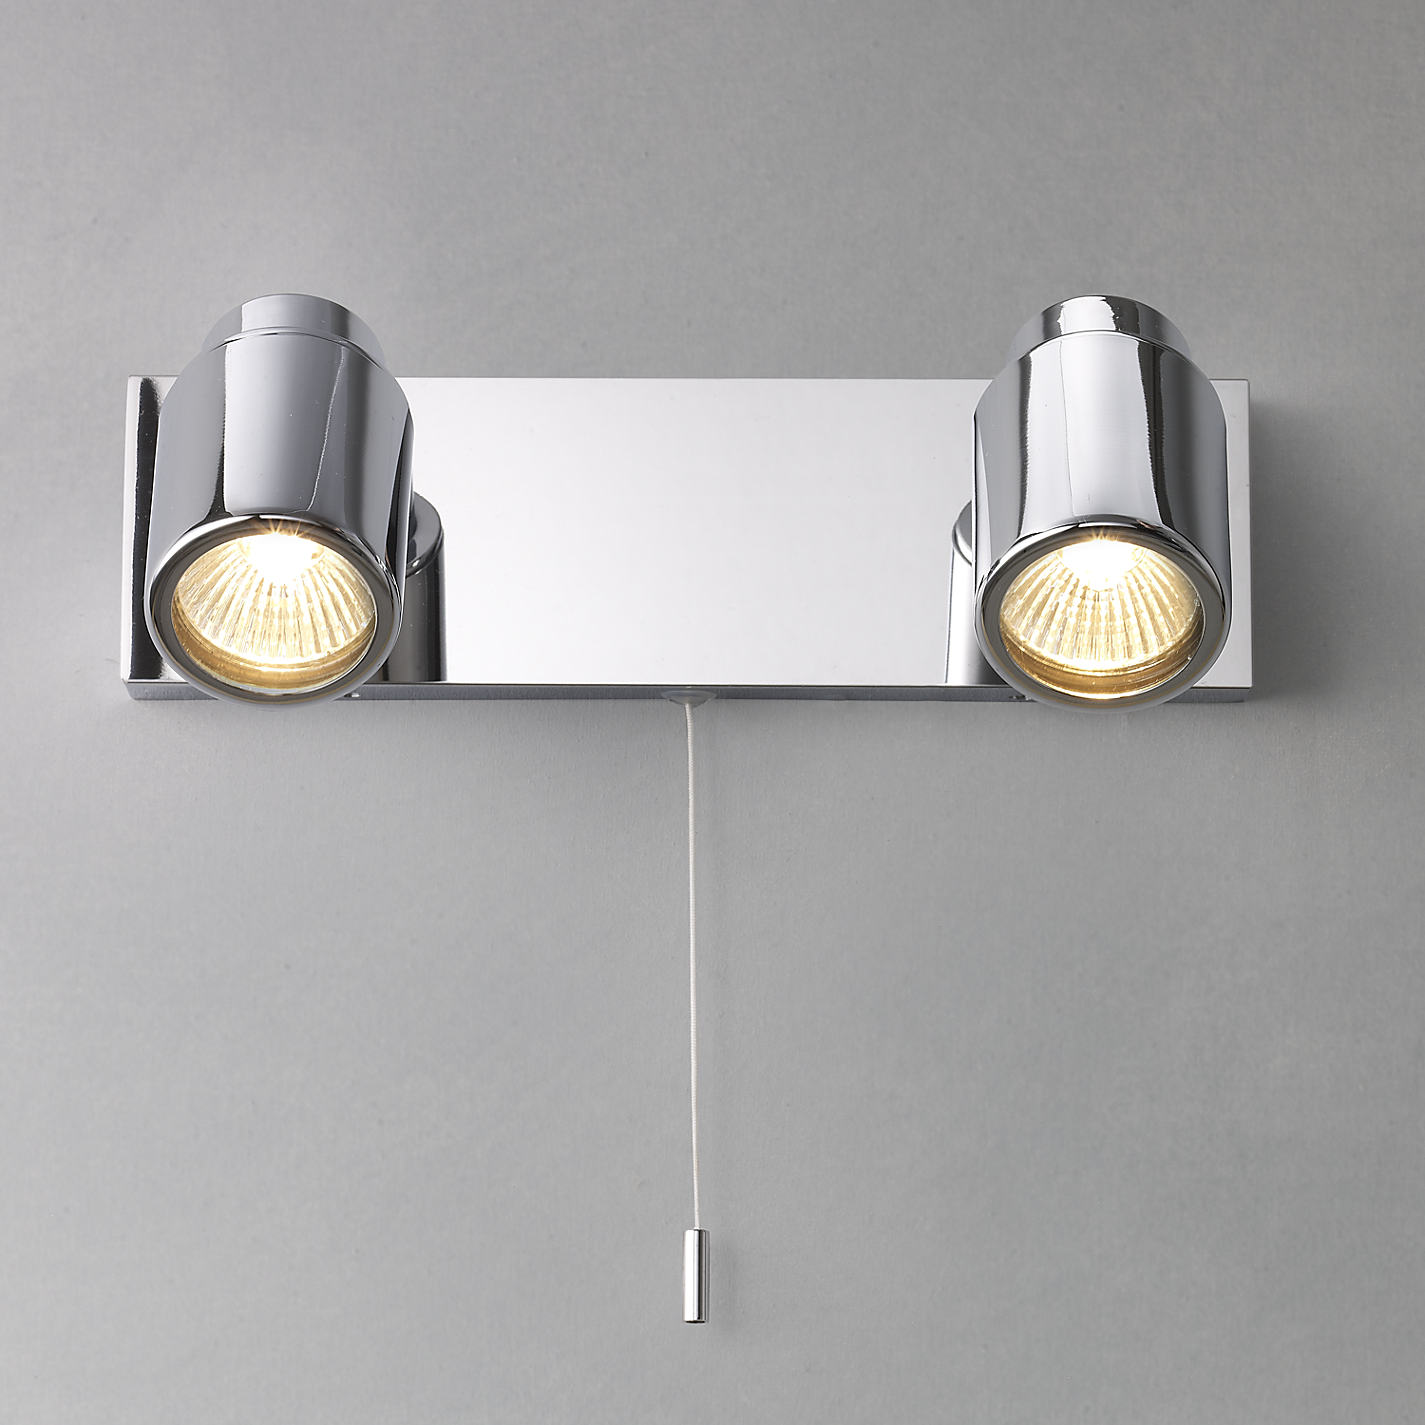 Bathroom Mirror Lights John Lewis buy astro como 2 bathroom spotlight wall plate | john lewis